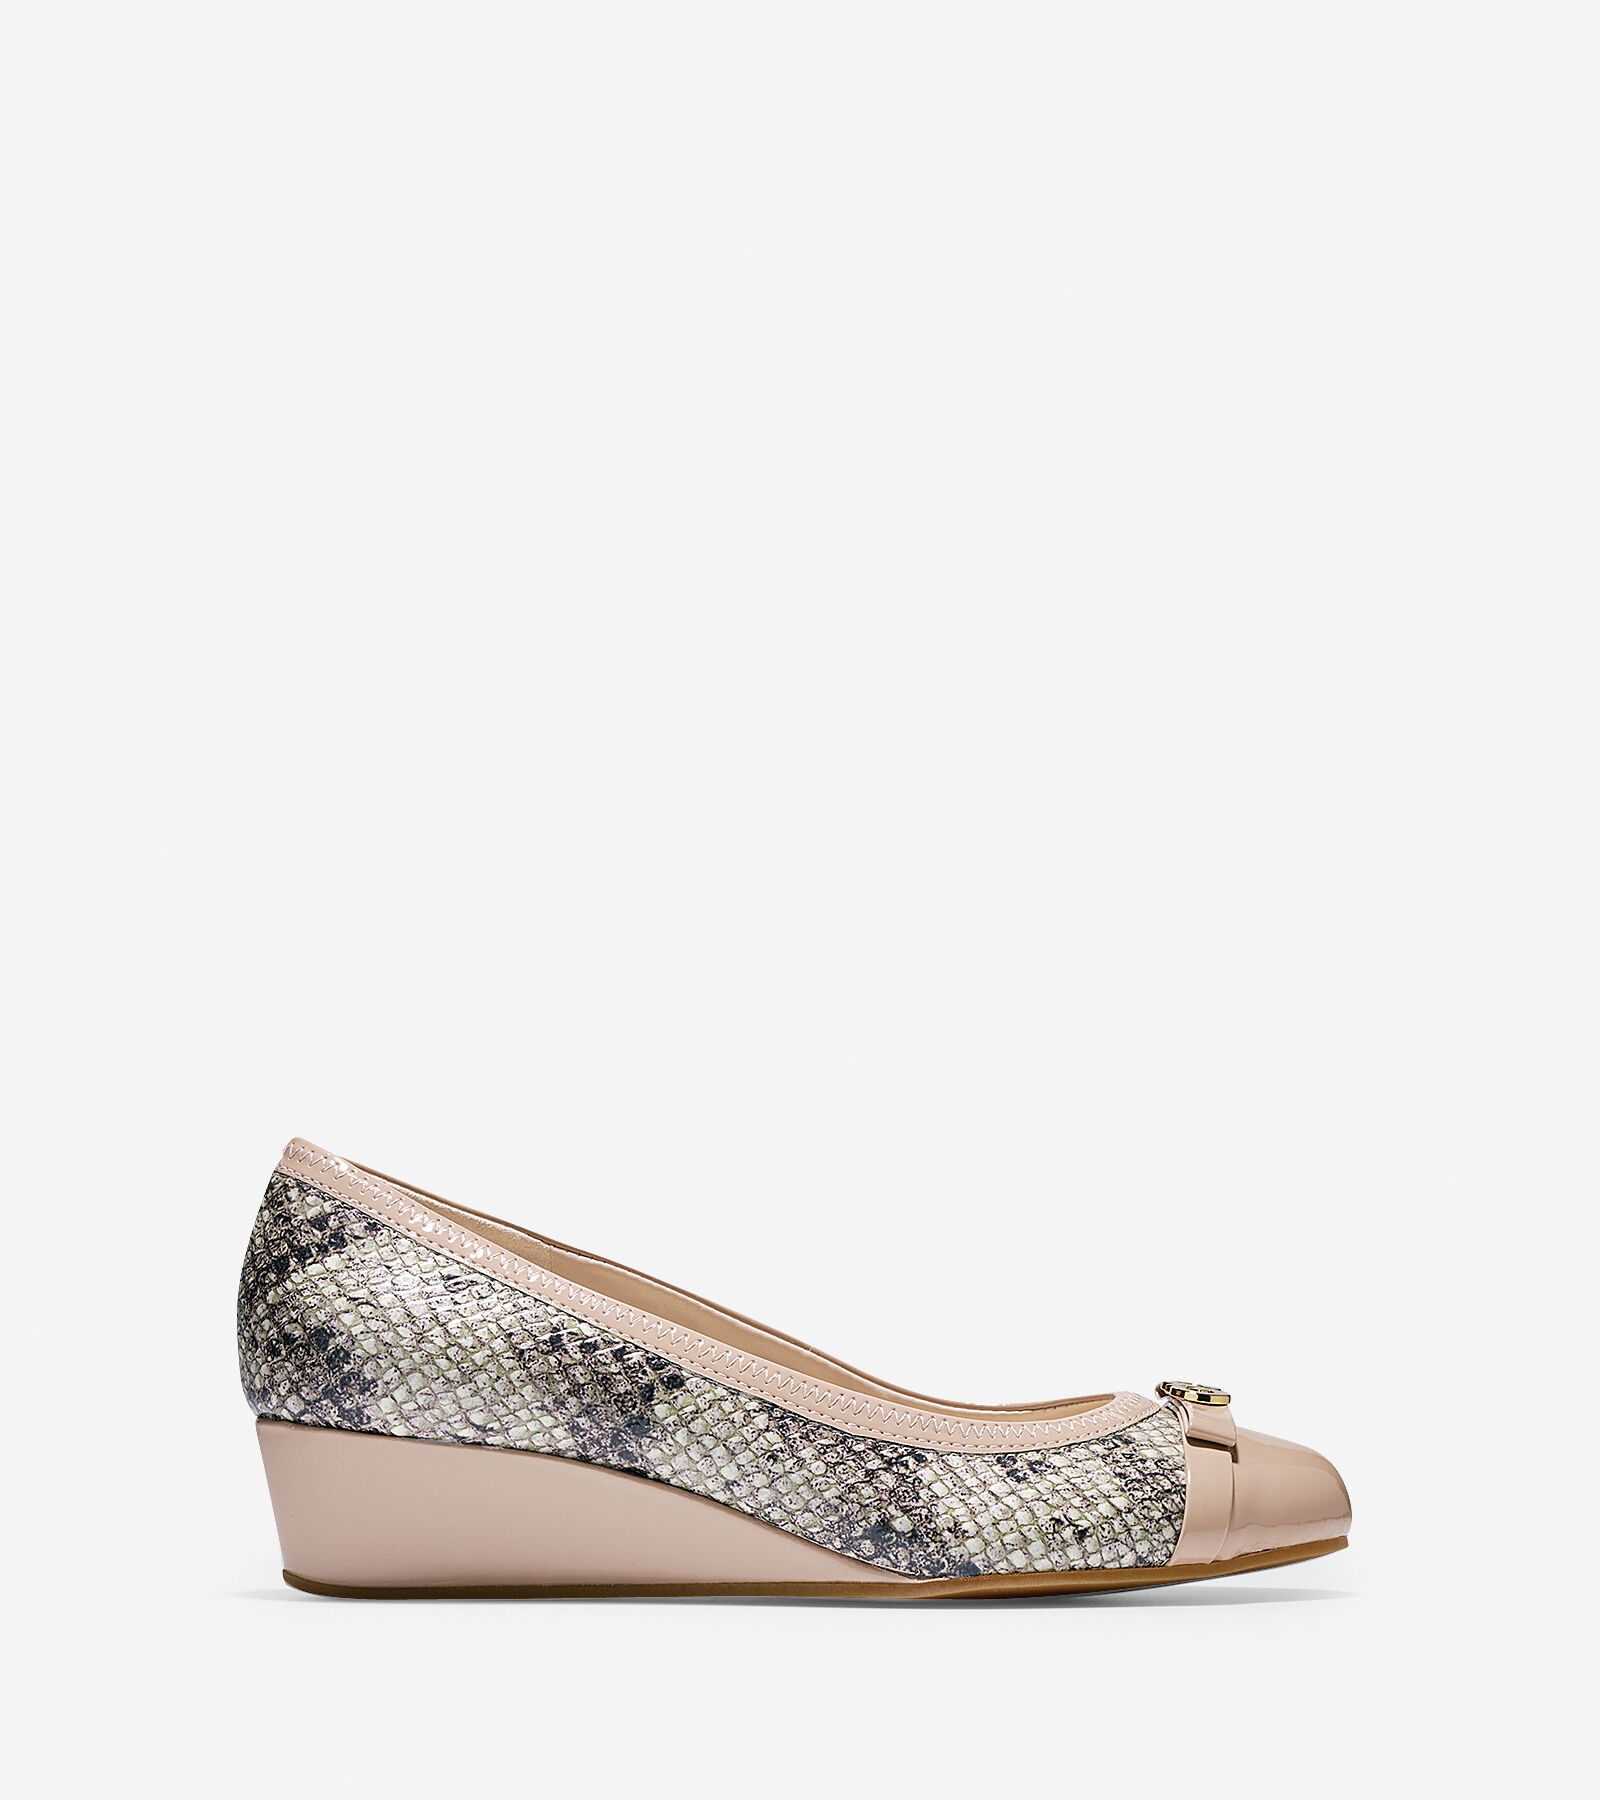 Womens Shoes Cole Haan Elsie Logo Wedge II Natural Roccia Snake Print/Patent